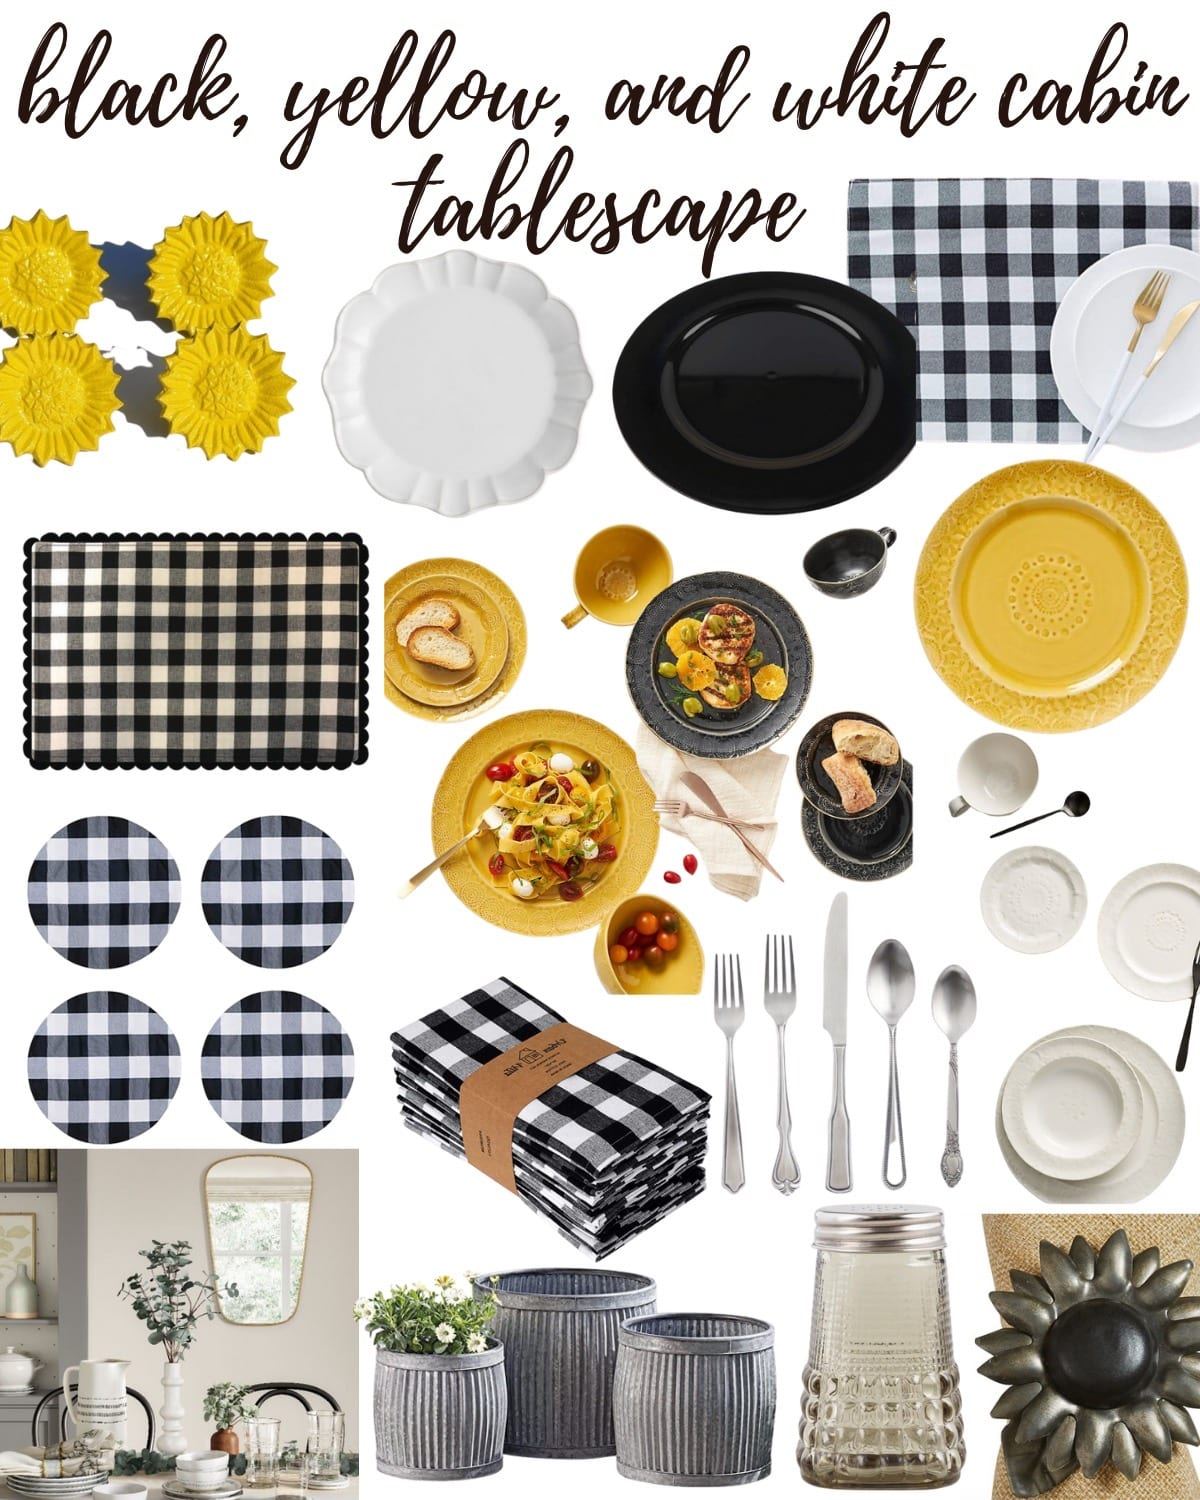 sources for black white yellow cabin tablescape